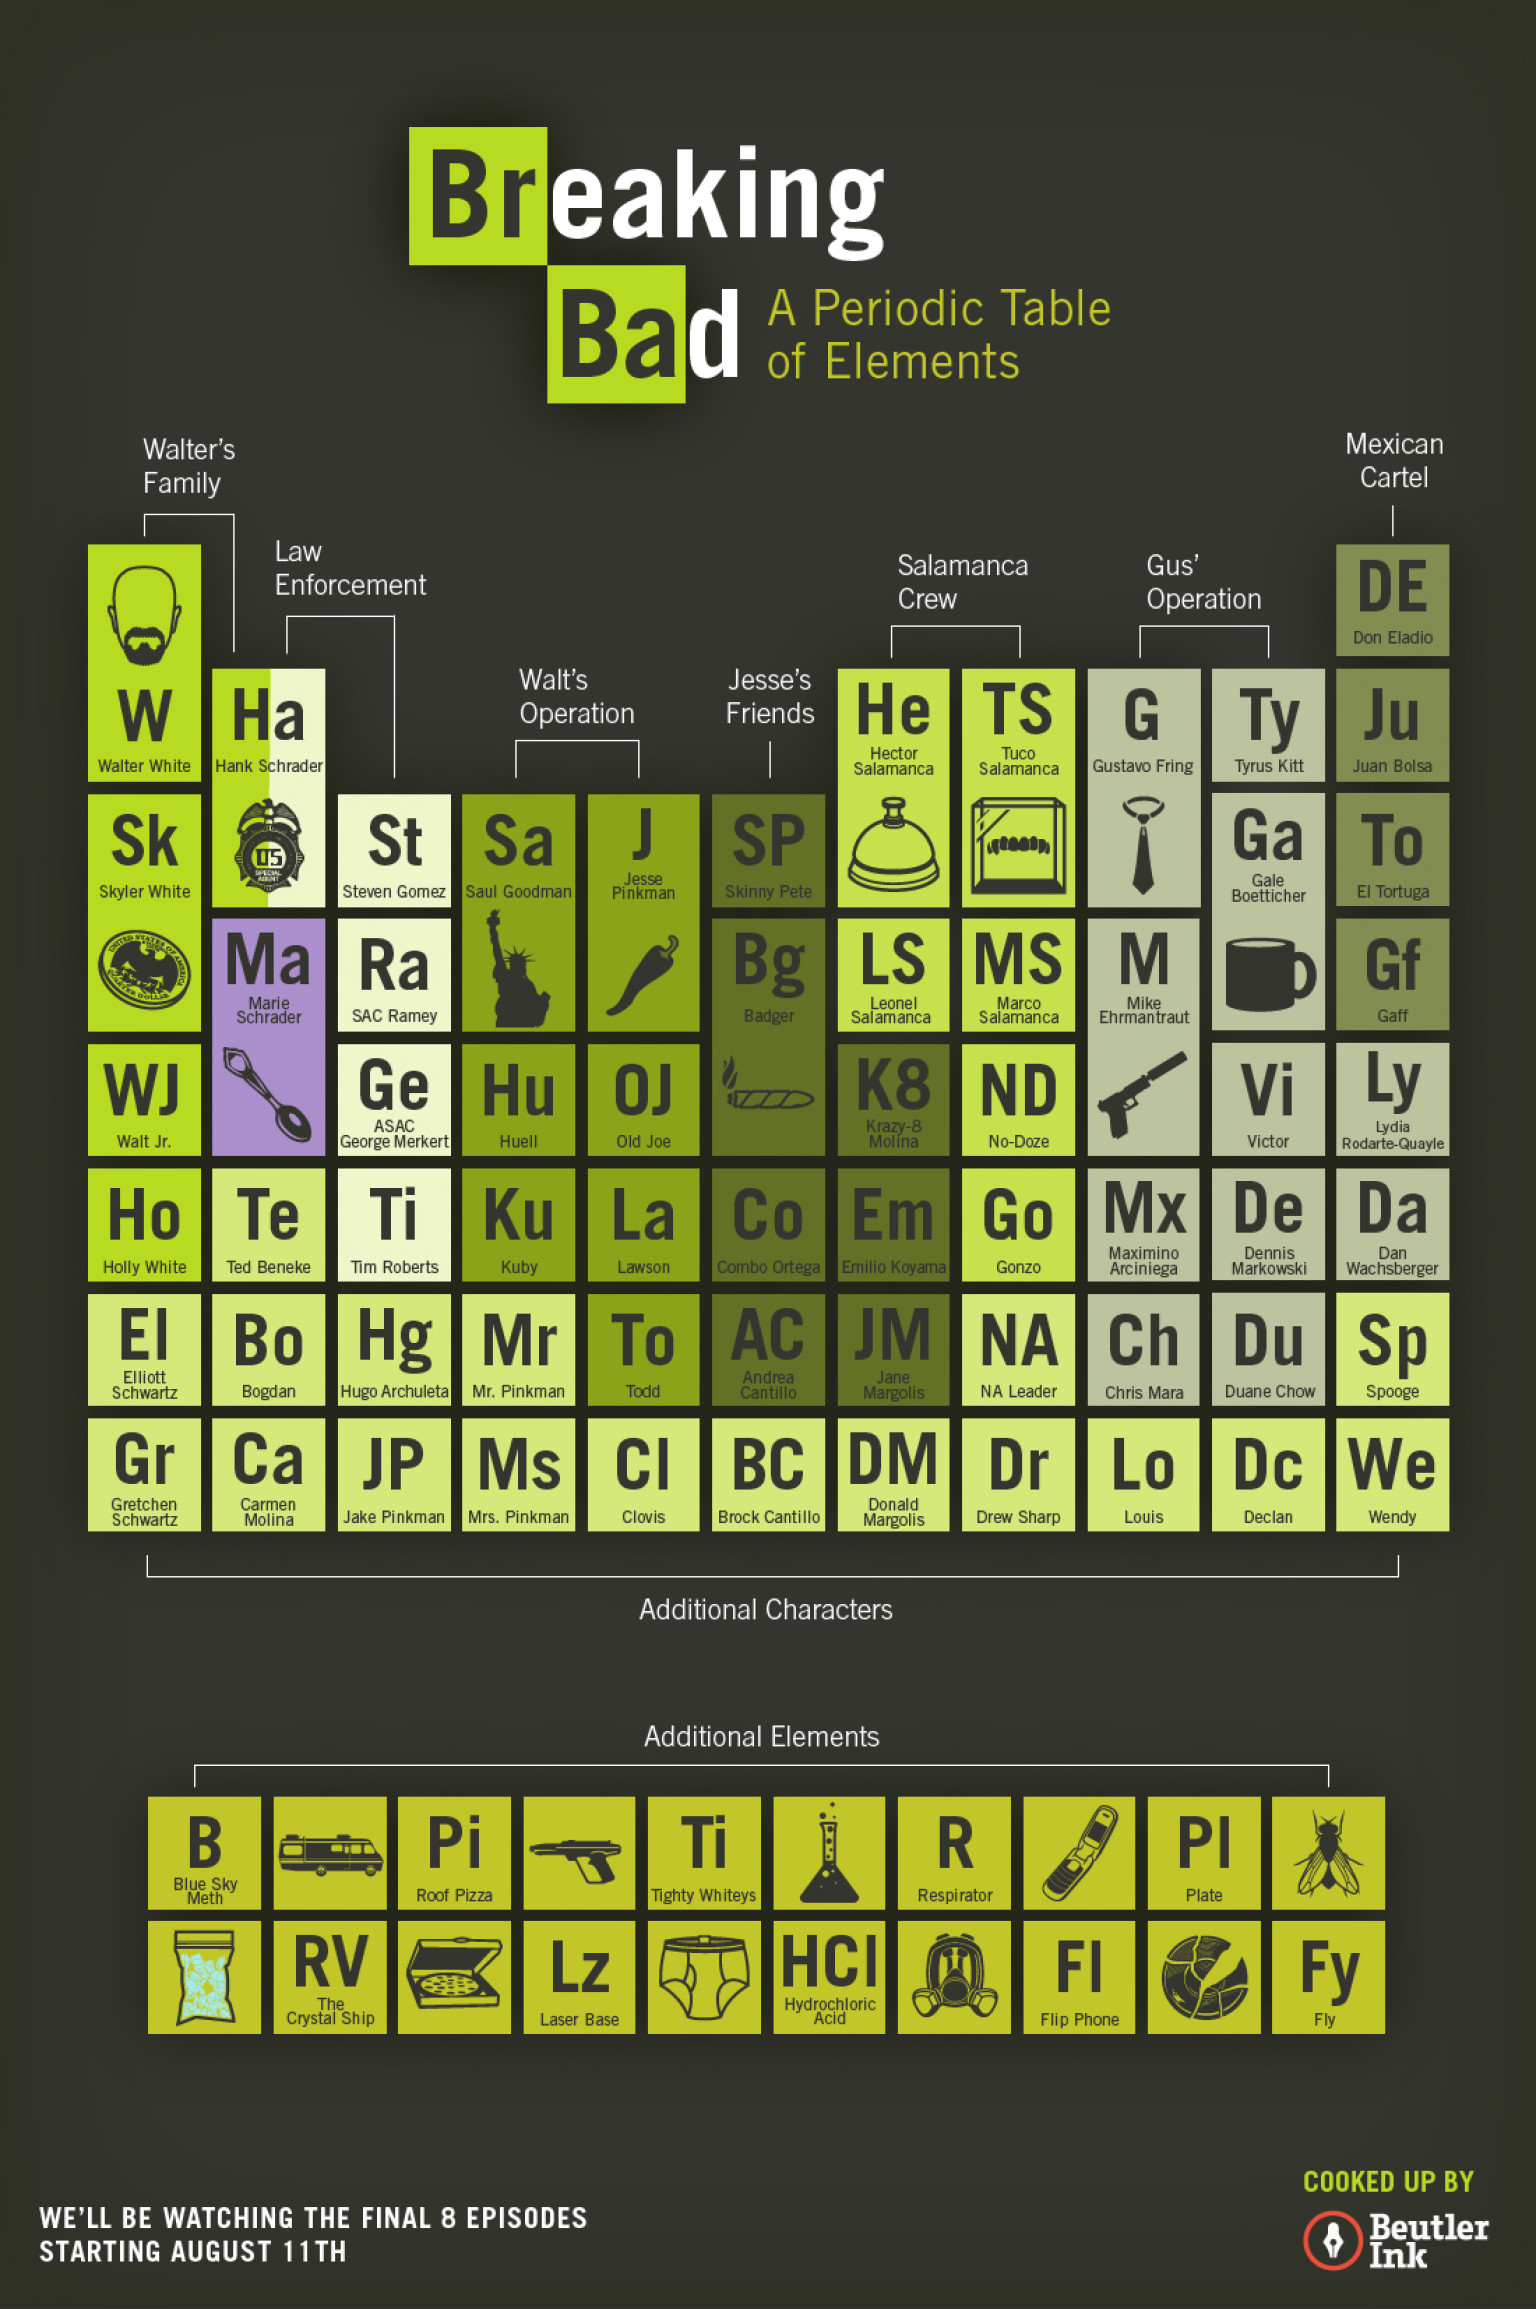 Breaking bad periodic table charting the elements of walt and breaking bad periodic table charting the elements of walt and jesses wonderful world of meth infographic huffpost urtaz Image collections